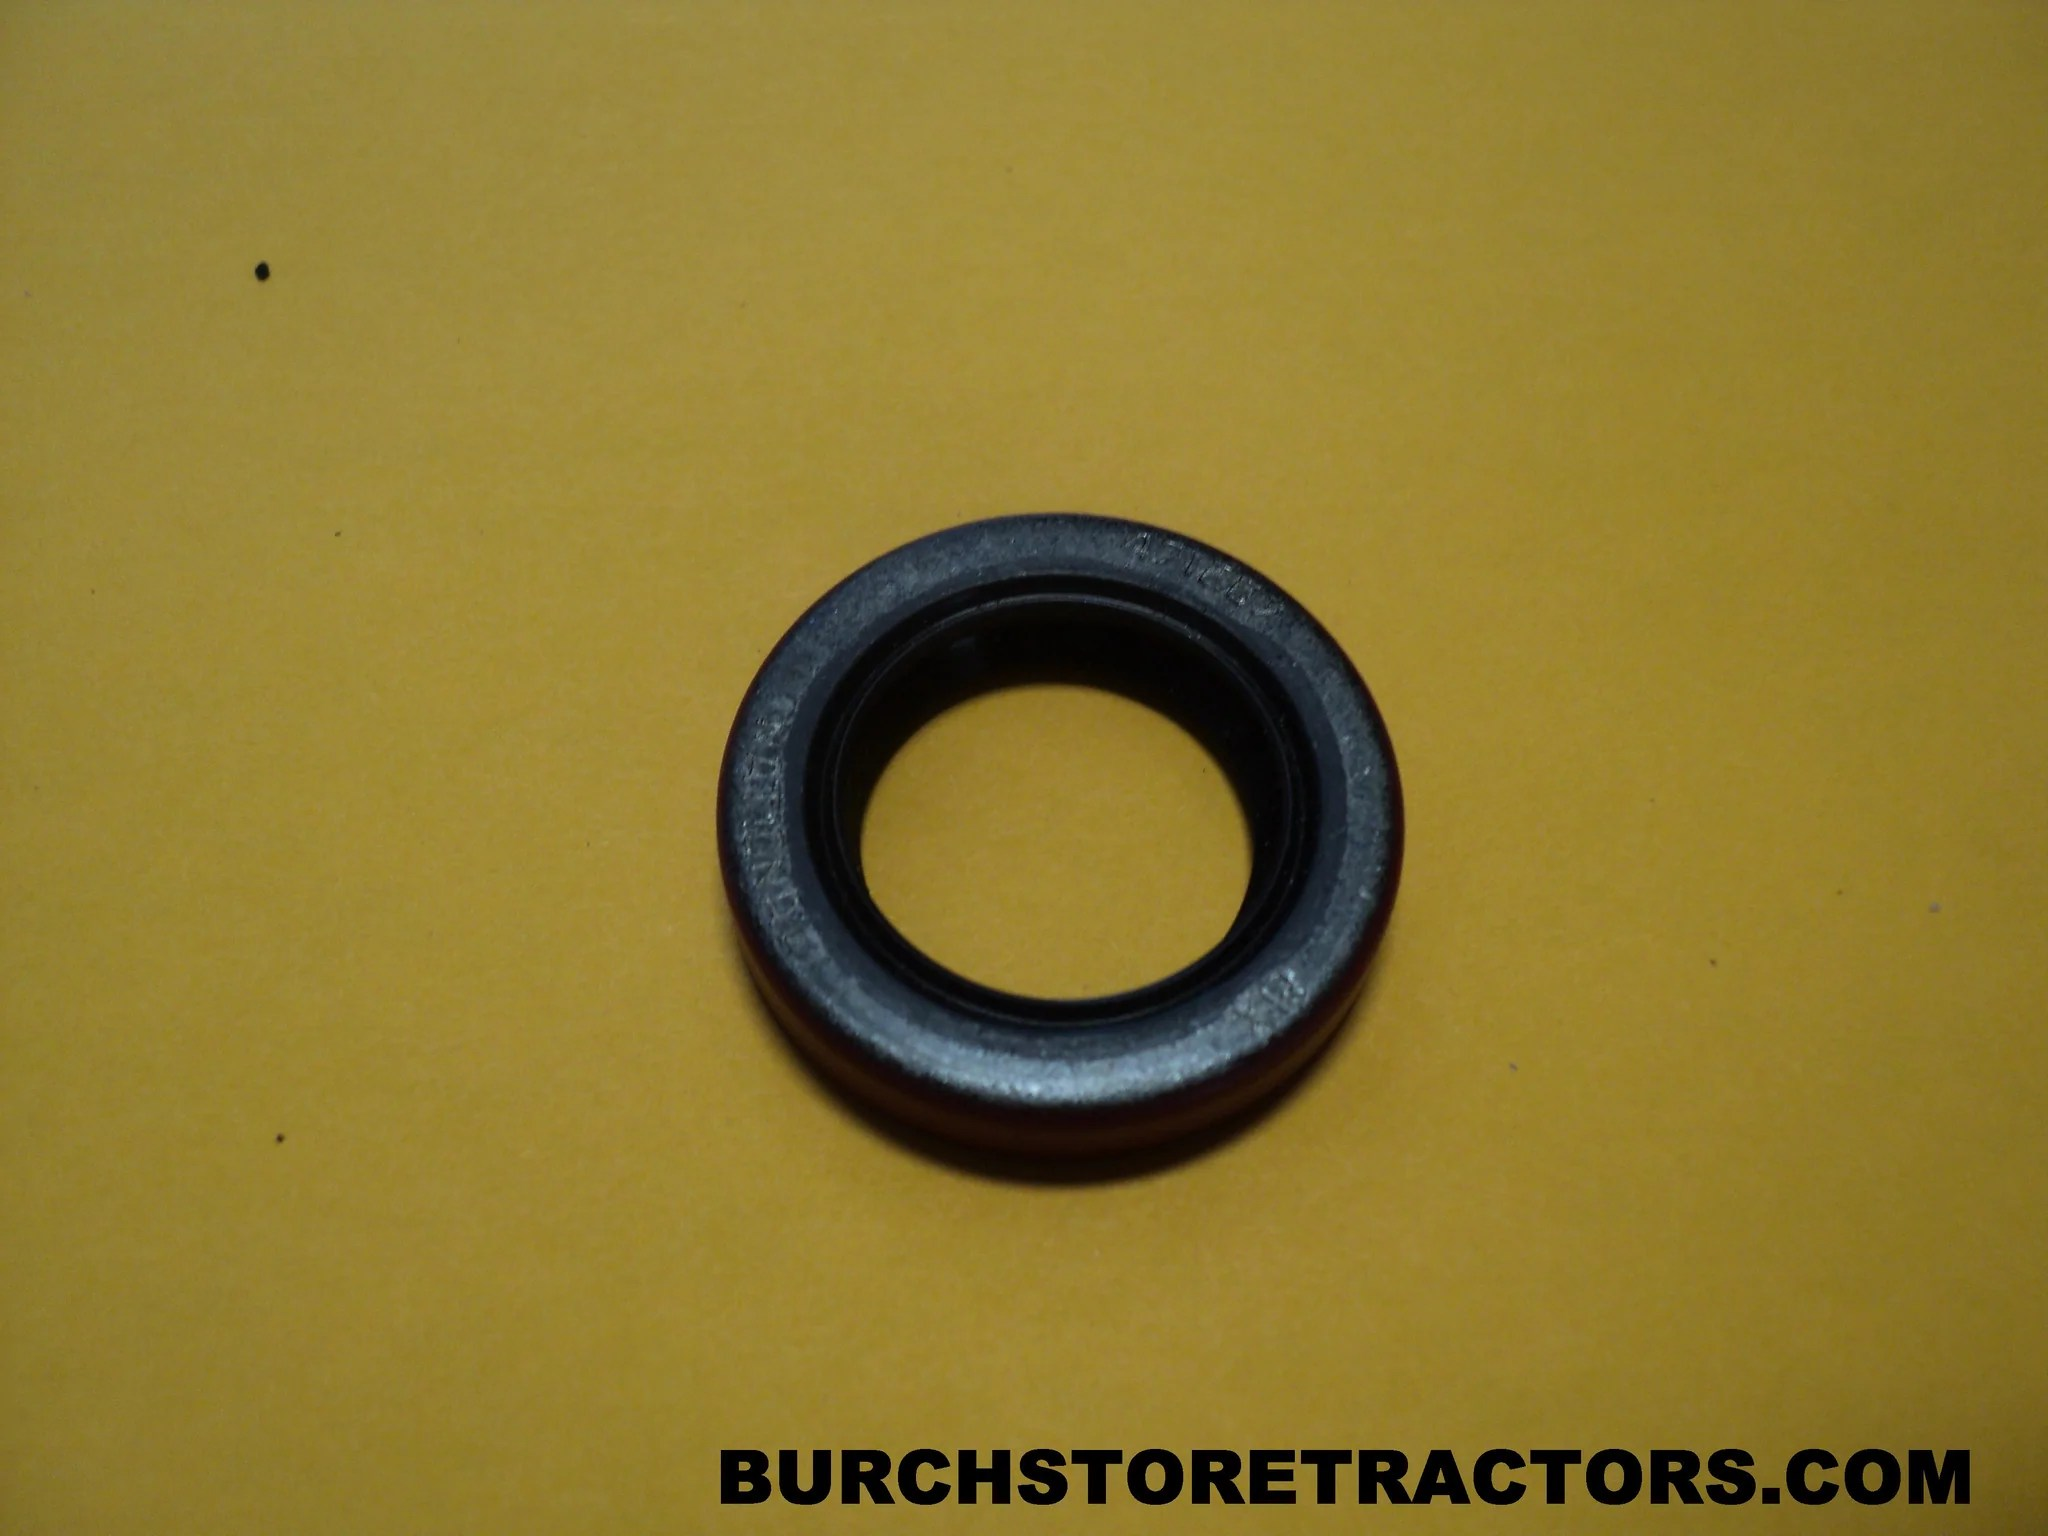 medium resolution of new top steering shaft oil seal for ih farmall cub or cub loboy tracto burch store tractors